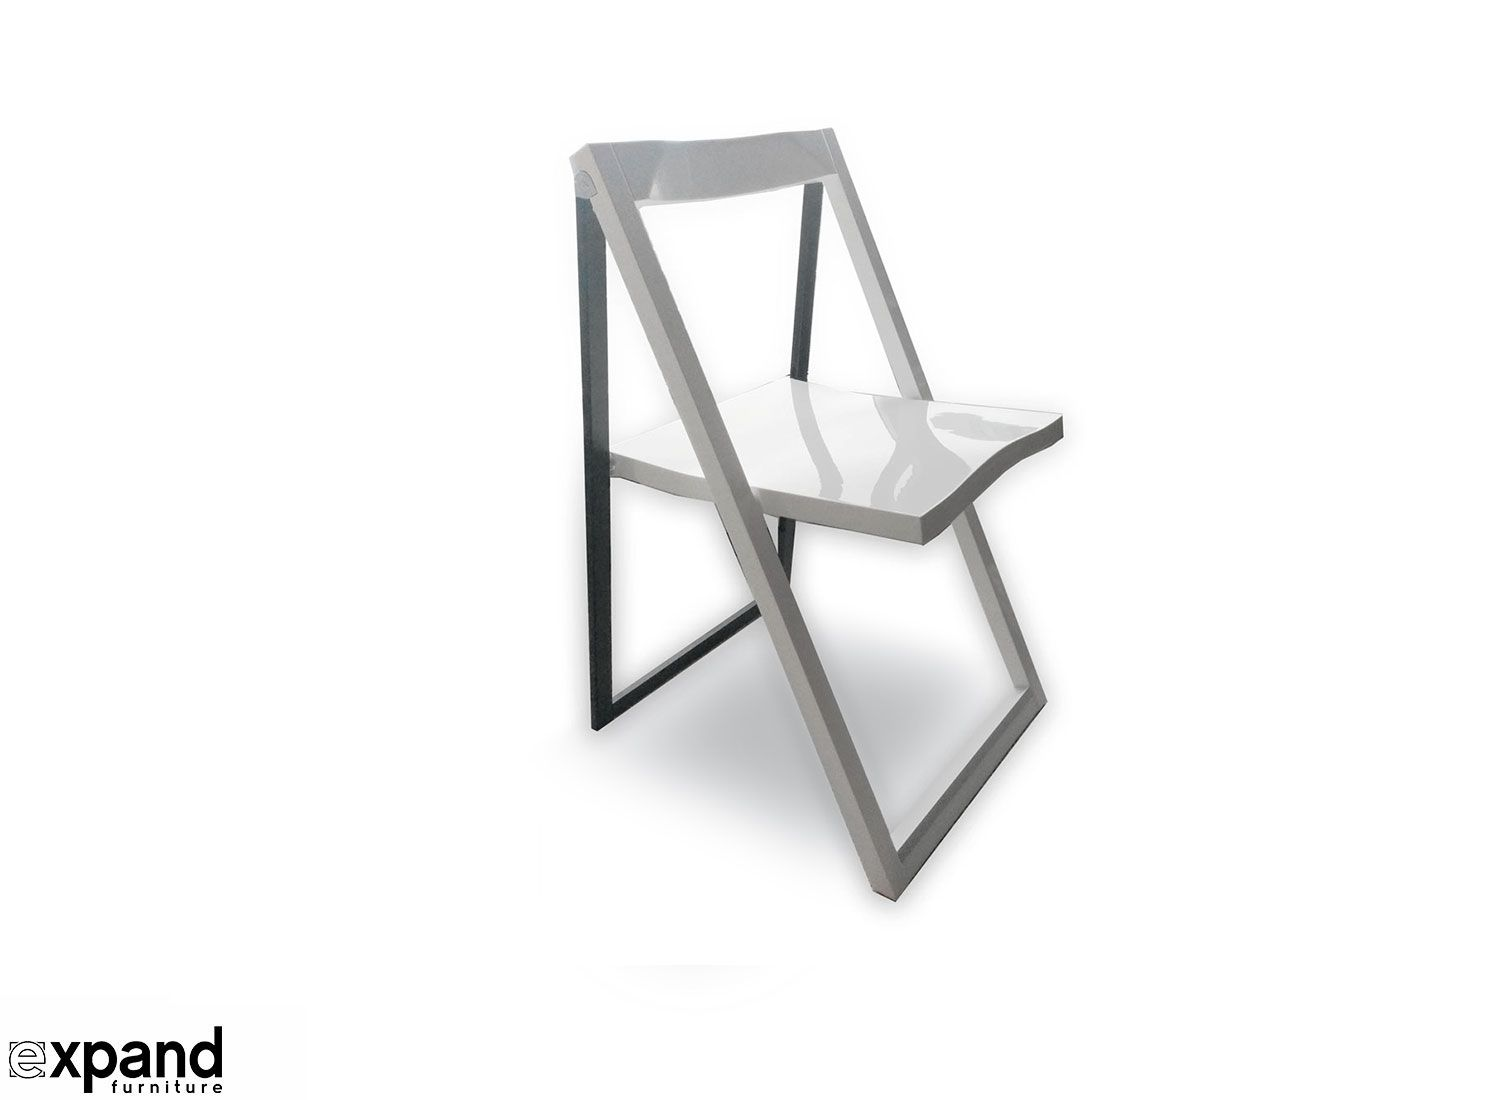 Our premium designer space saving folding chairs are eye pleasing with its  angular lines that evoke